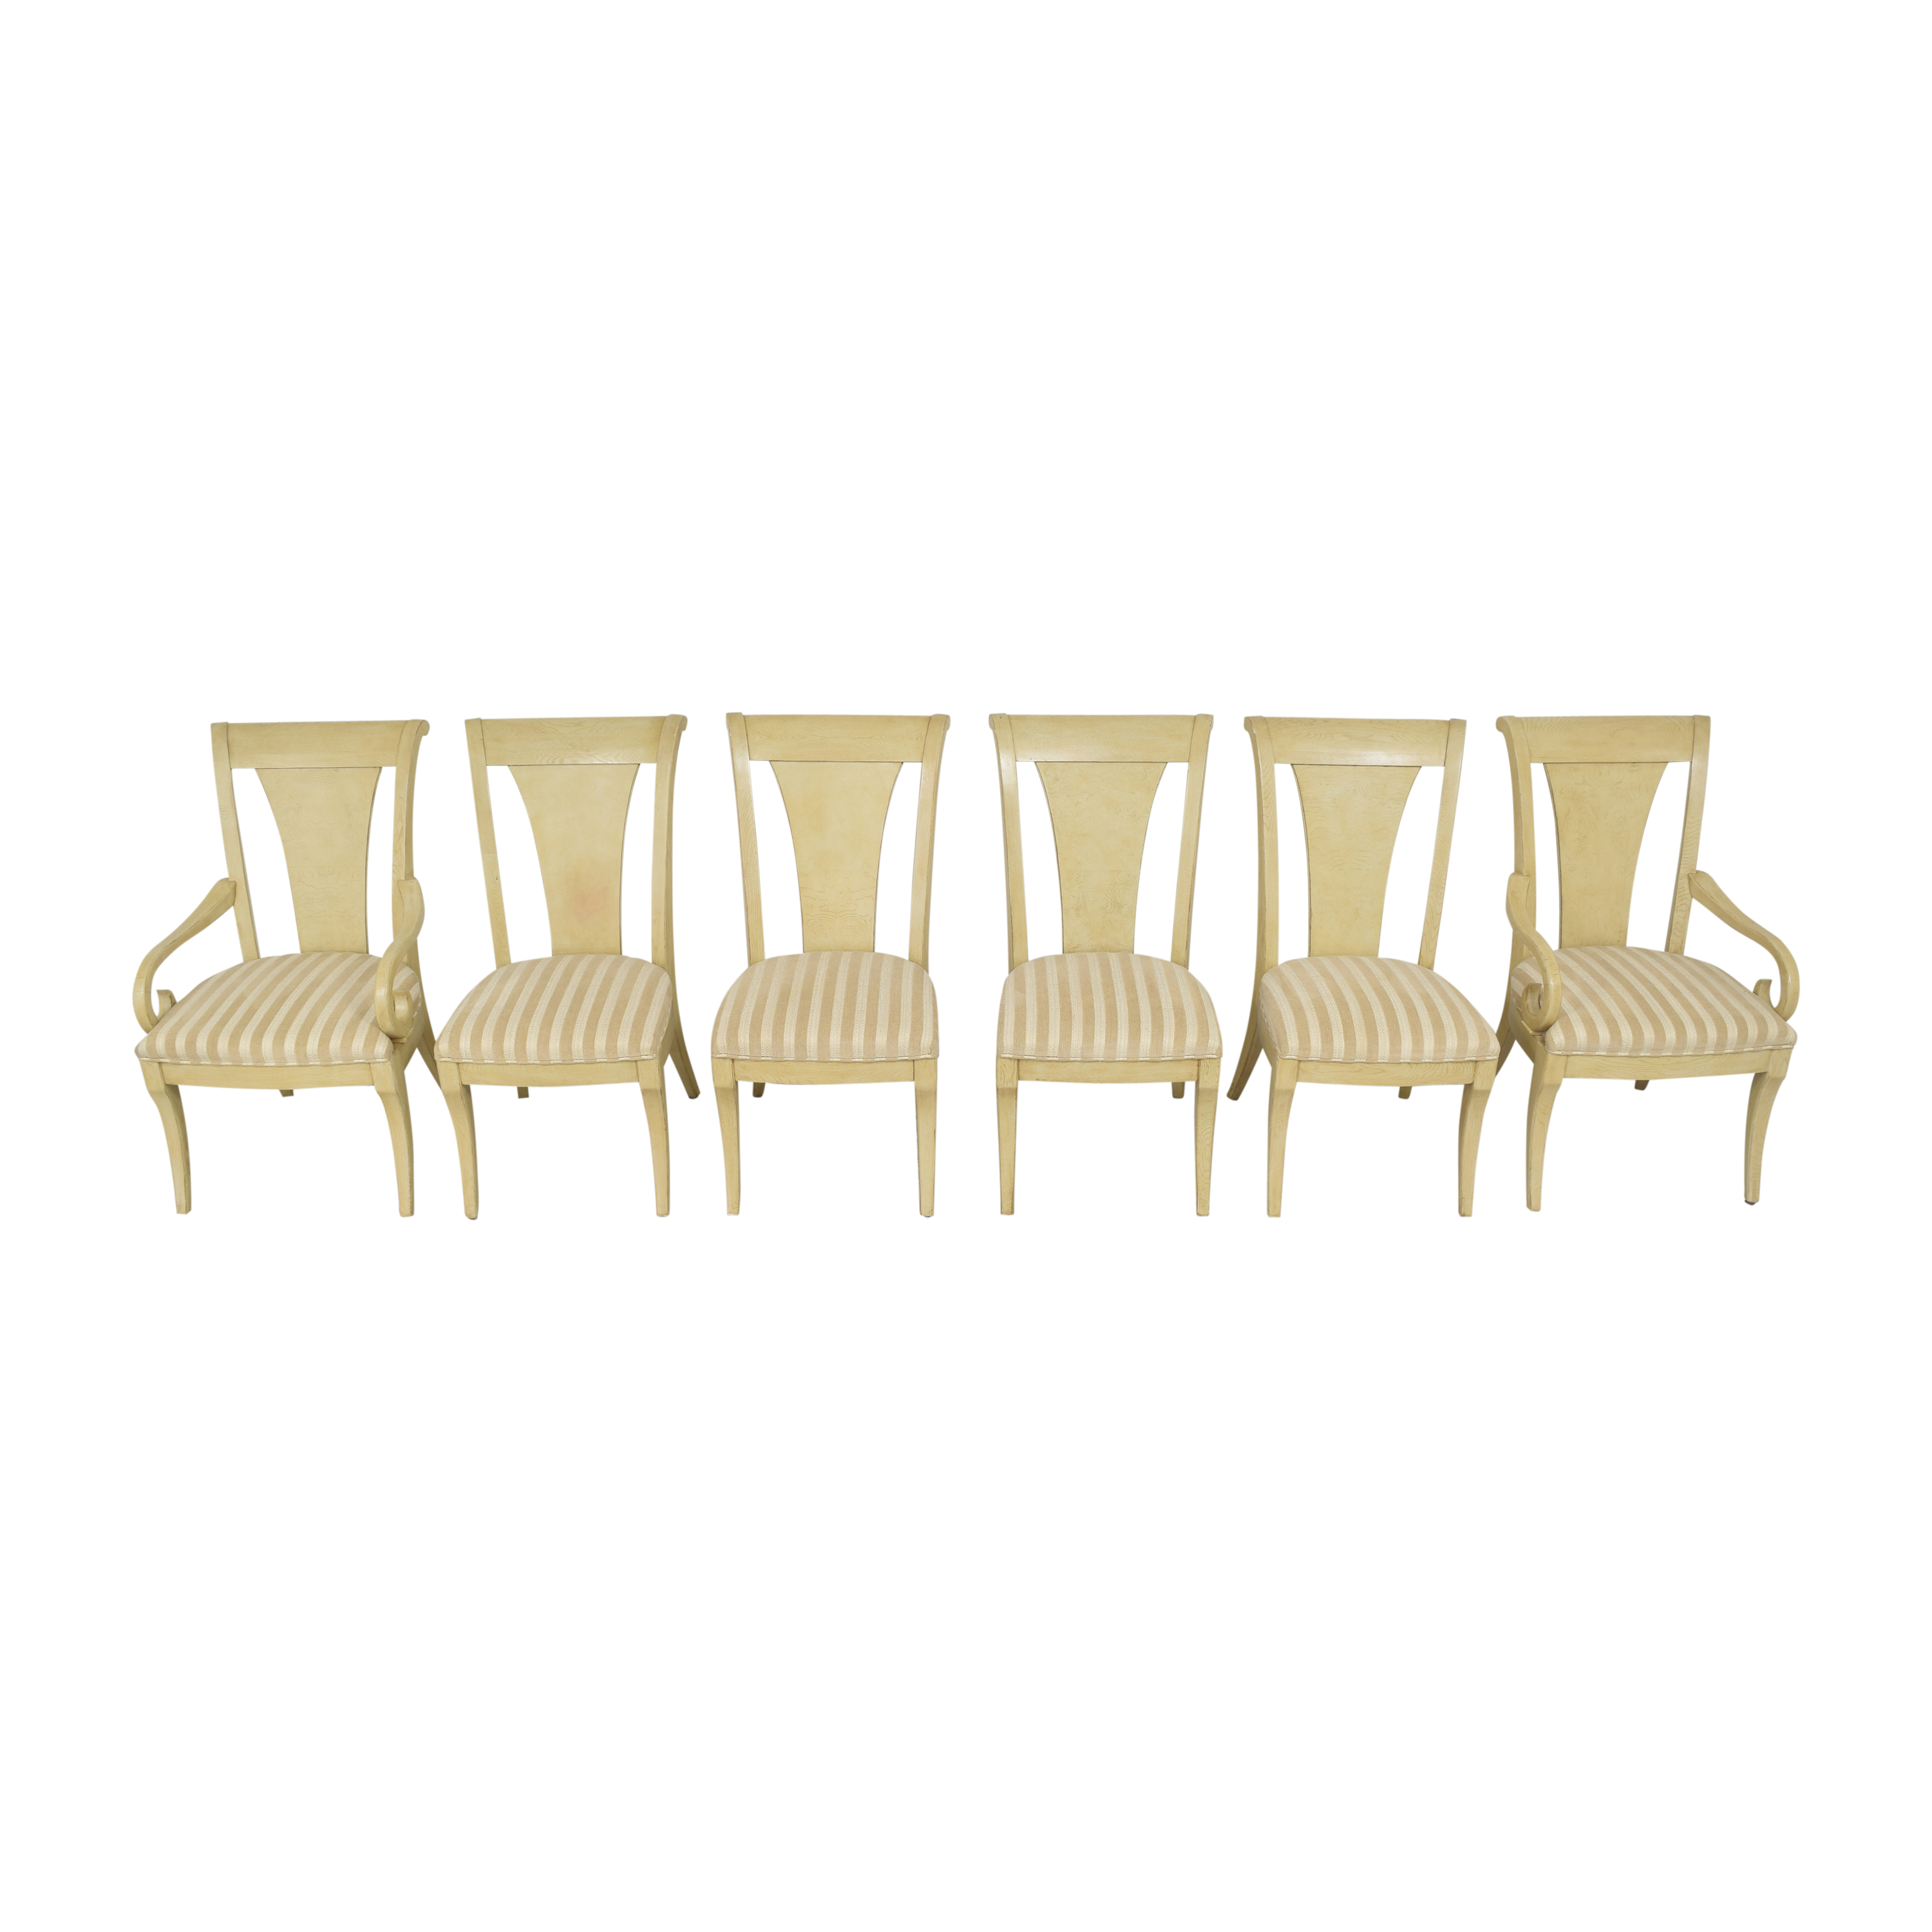 Drexel Heritage Drexel Heritage Insignia Dining Chairs for sale